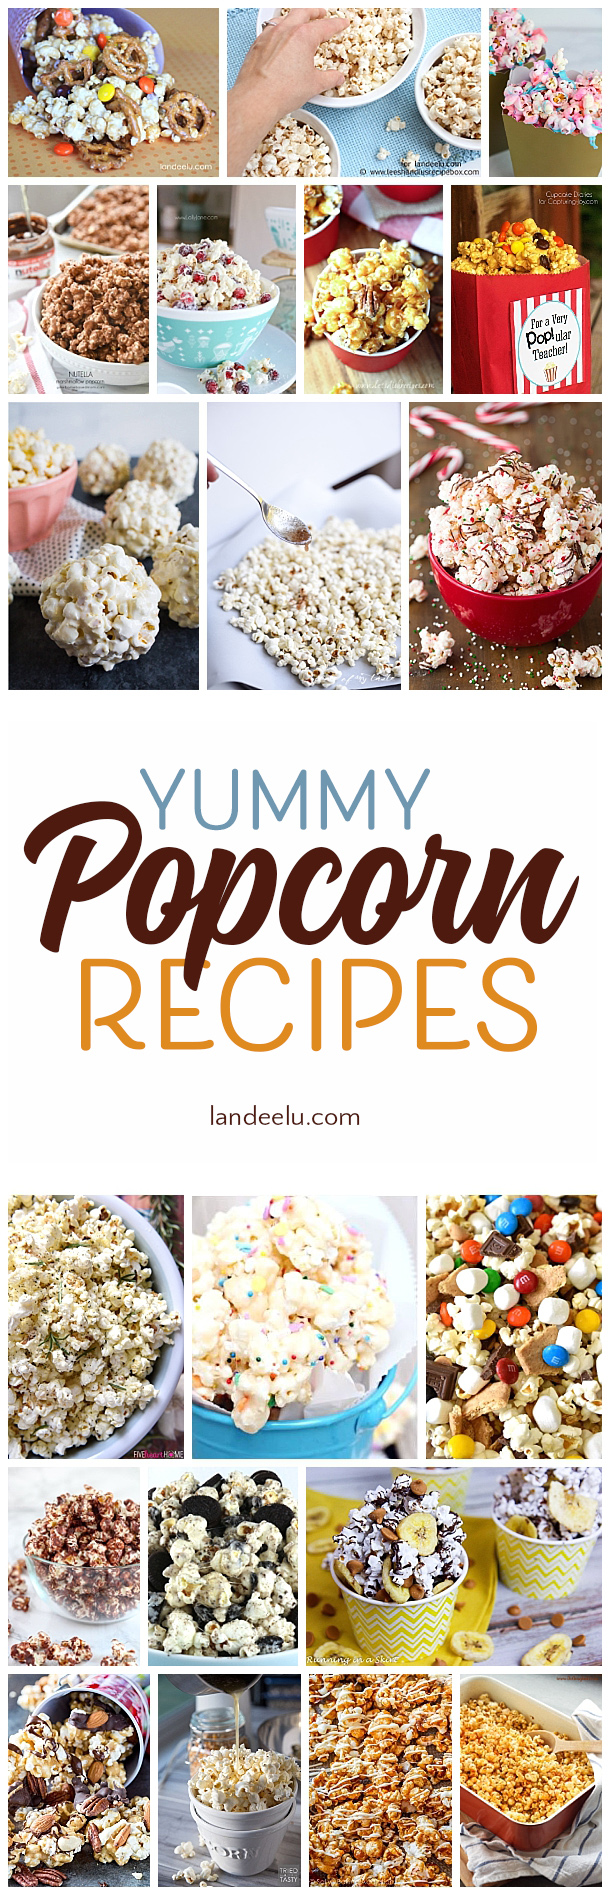 Try one of these yummy popcorn recipes for family night... everyone will love it!